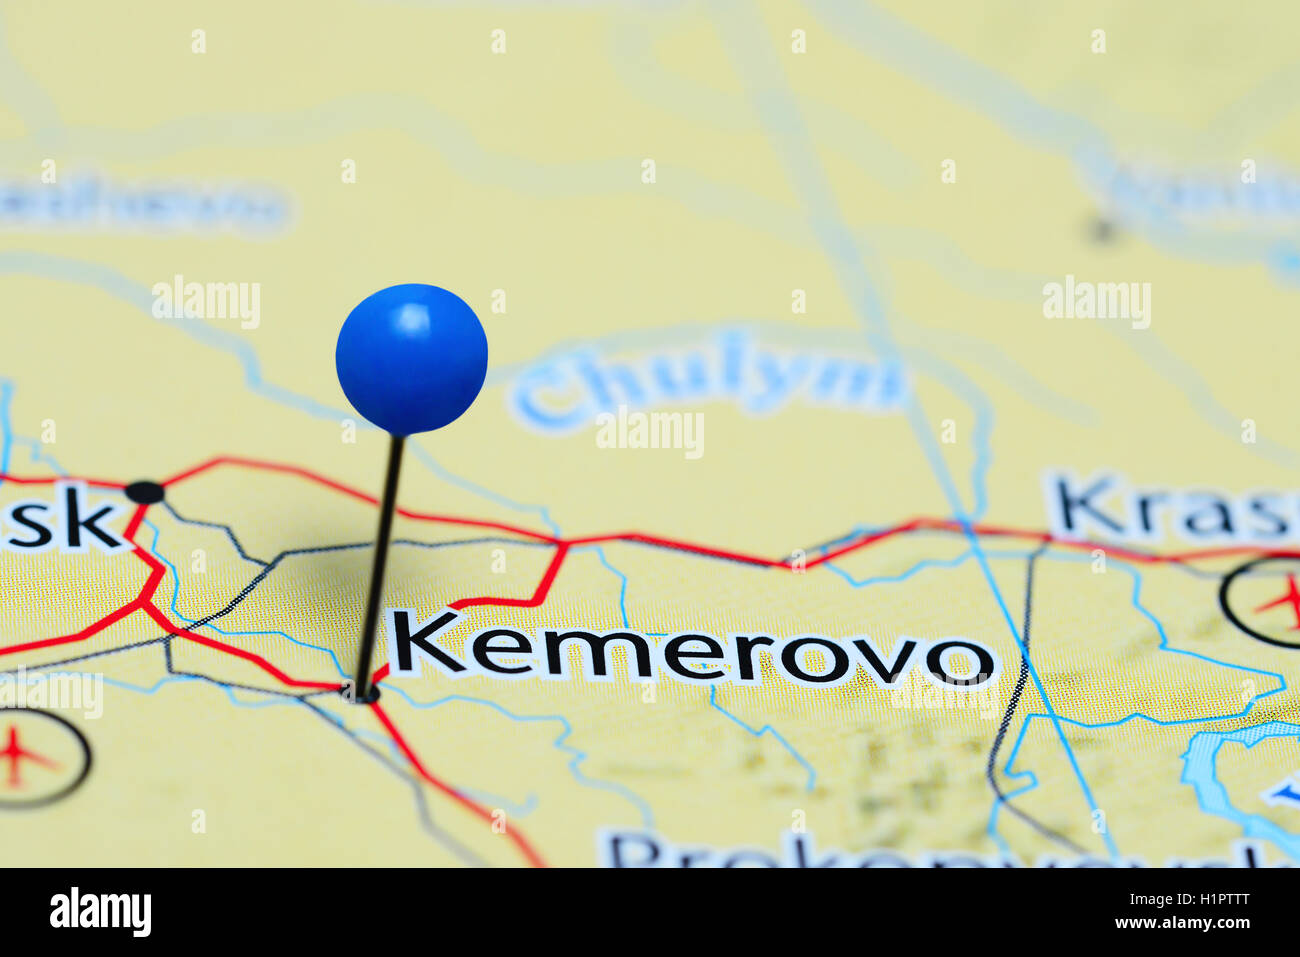 Kemerovo pinned on a map of Russia Stock Photo 121589688 Alamy